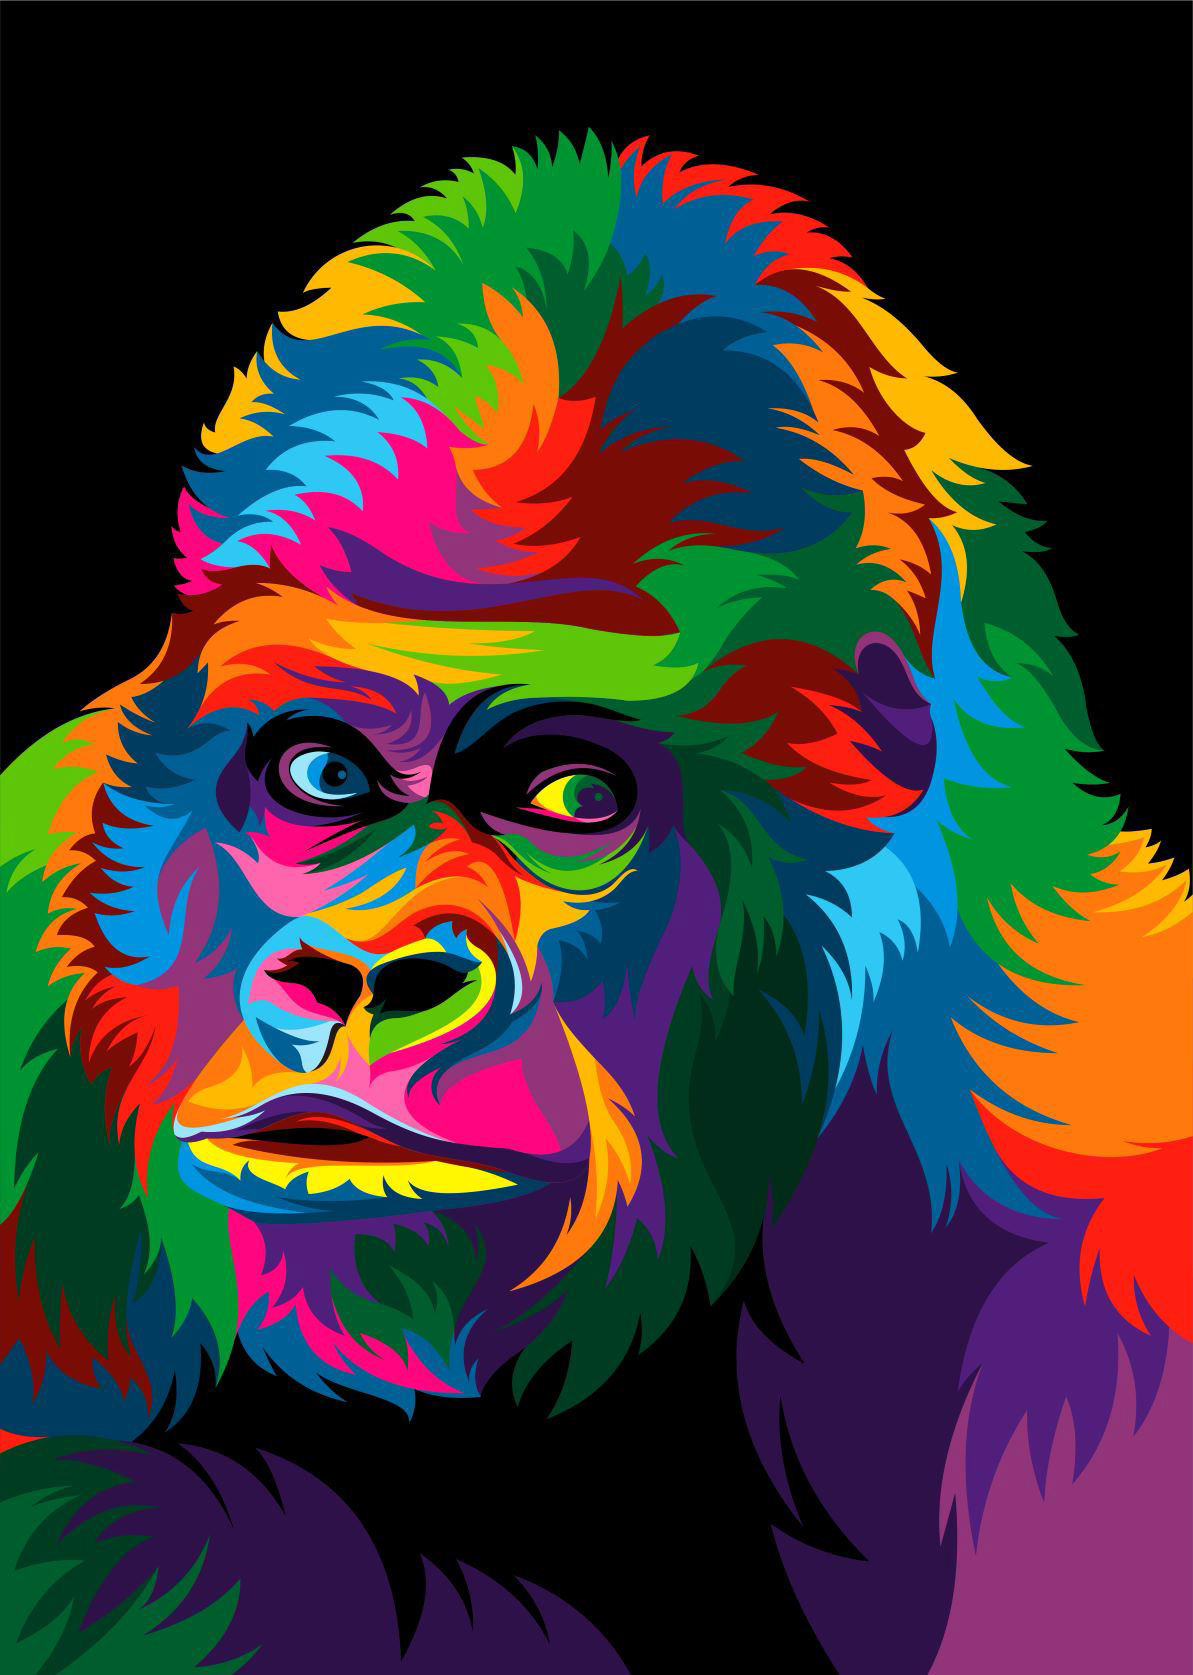 colorful animal vector illustration animals pop paintings behance artwork drawings abstract rainbow illustrations arte scrolling thanks 5d